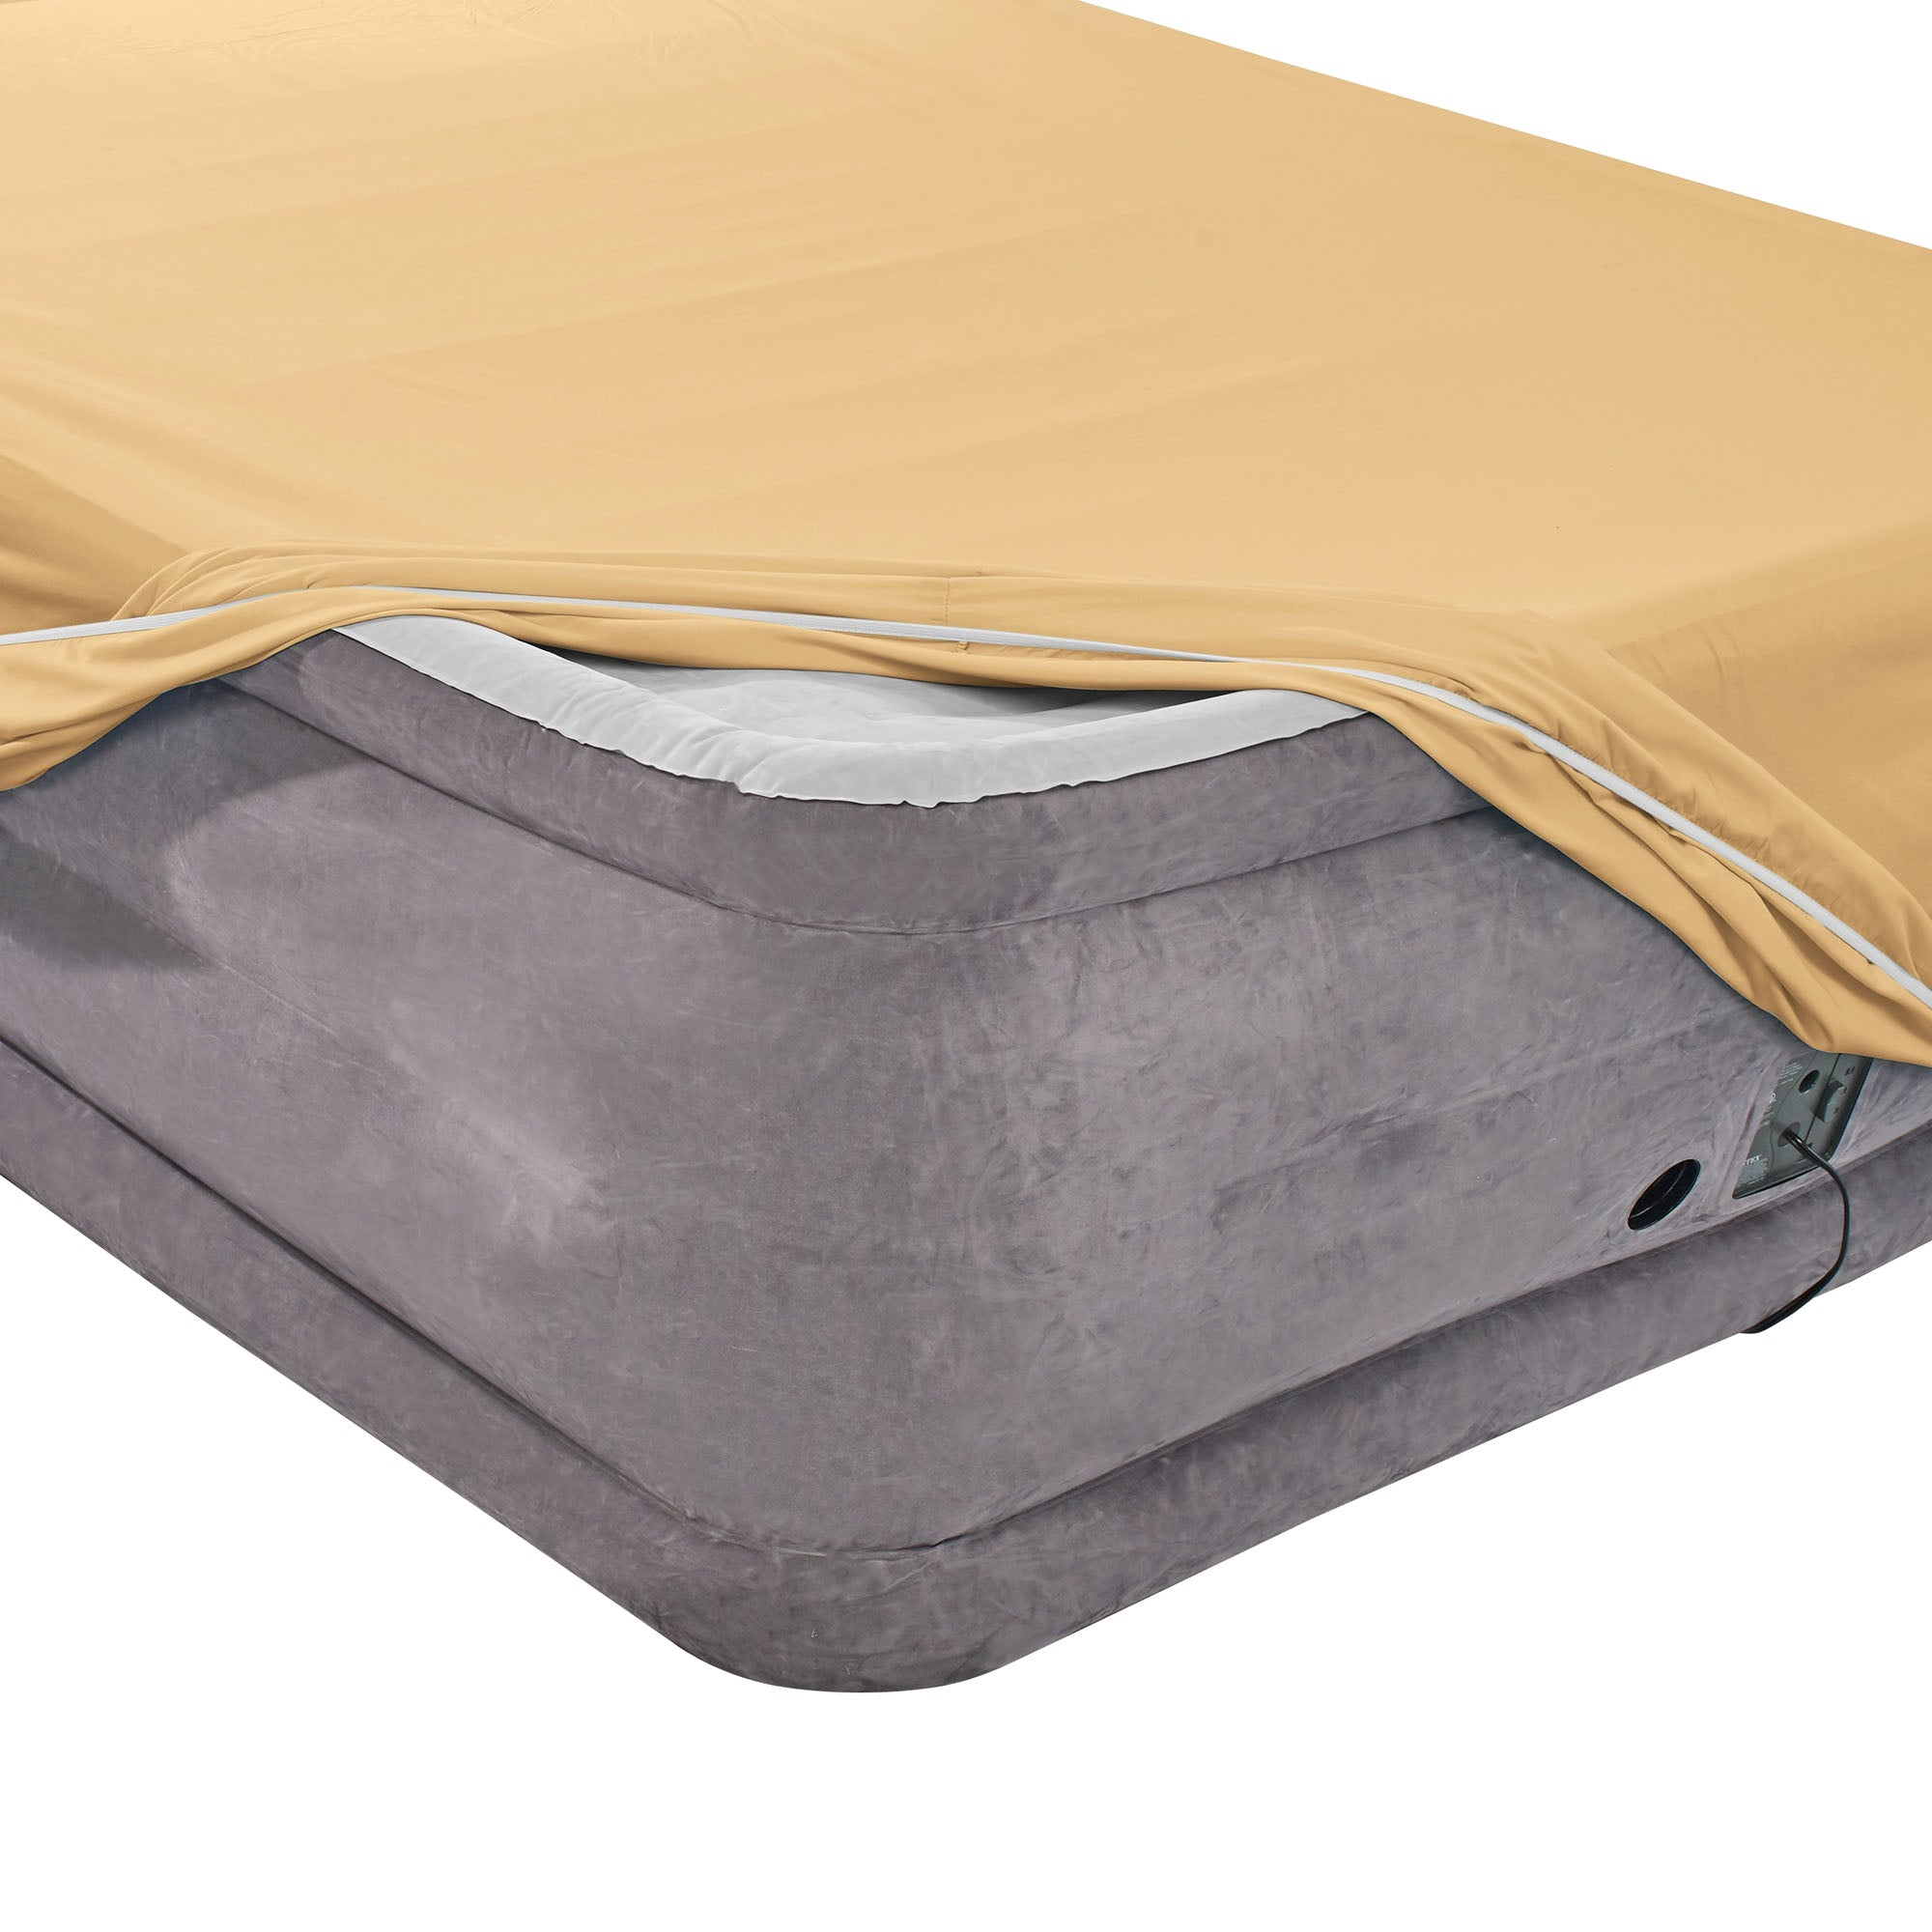 Nestl Bedding Twin Fitted Sheet - Single Fitted Deep Pocket Sheet - Fits Mattress Perfectly - Soft Wrinkle Free Sheet - 1 Fitted Sheet Only